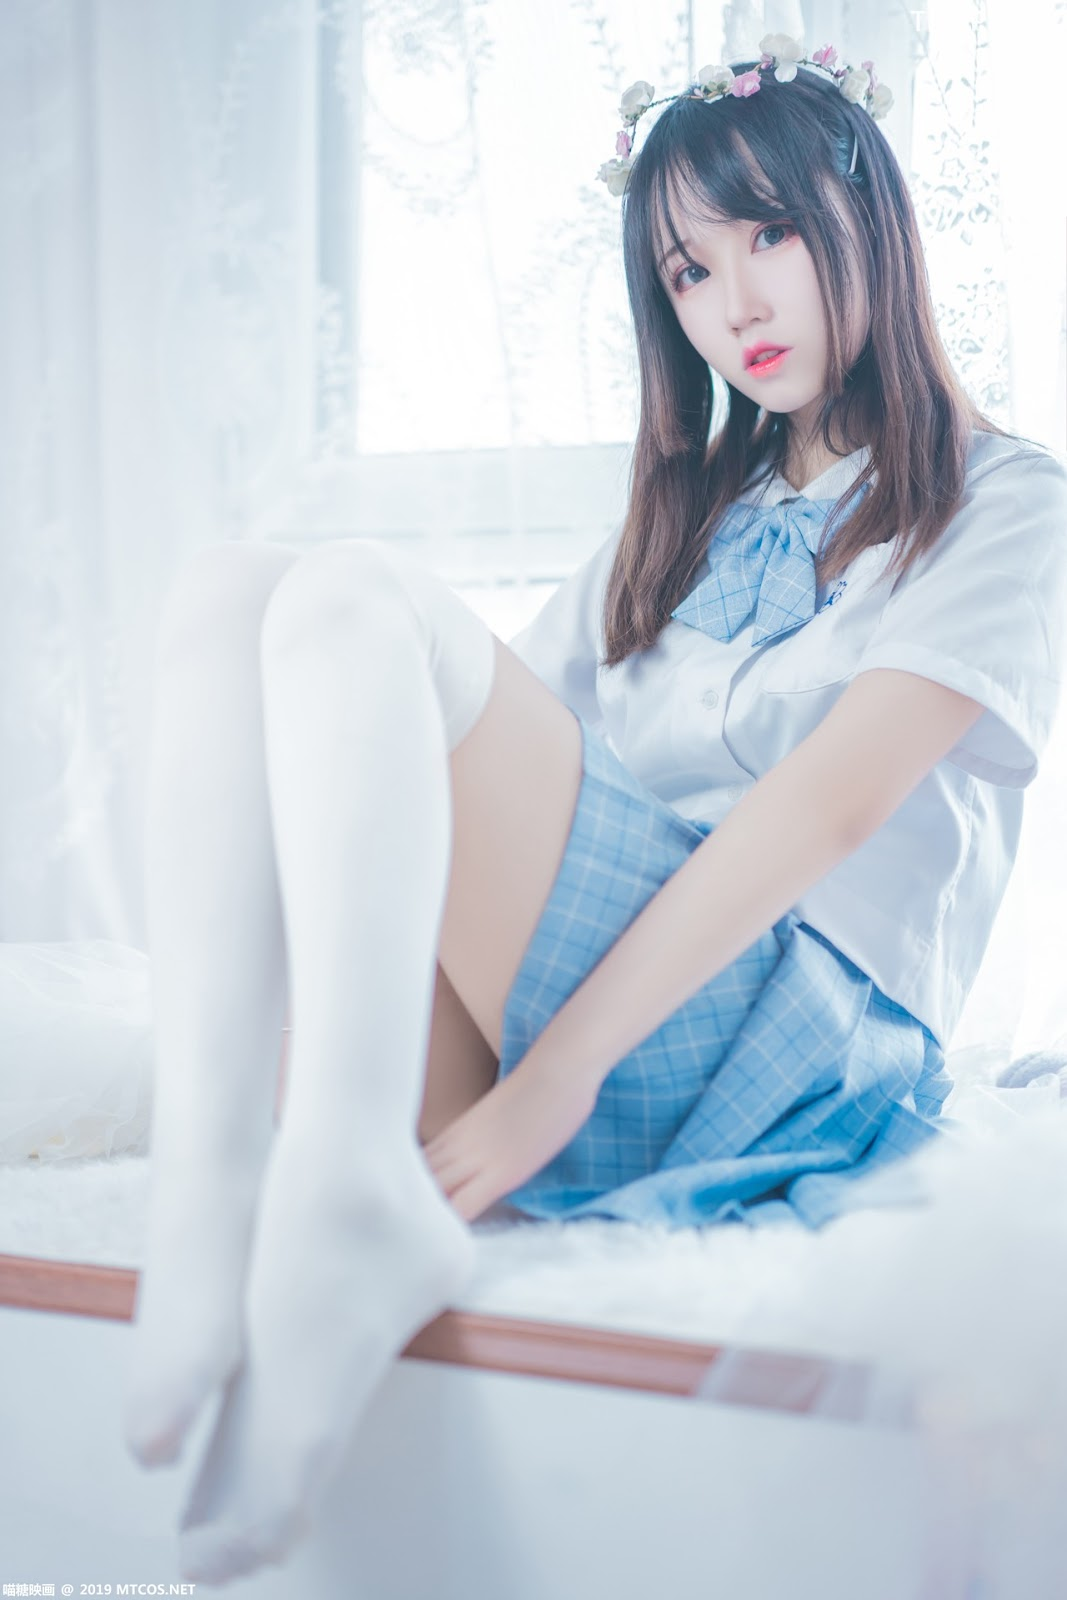 Image [MTCos] 喵糖映画 Vol.019 – Chinese Cute Model – Blue White Fantasy Girl - TruePic.net - Picture-9